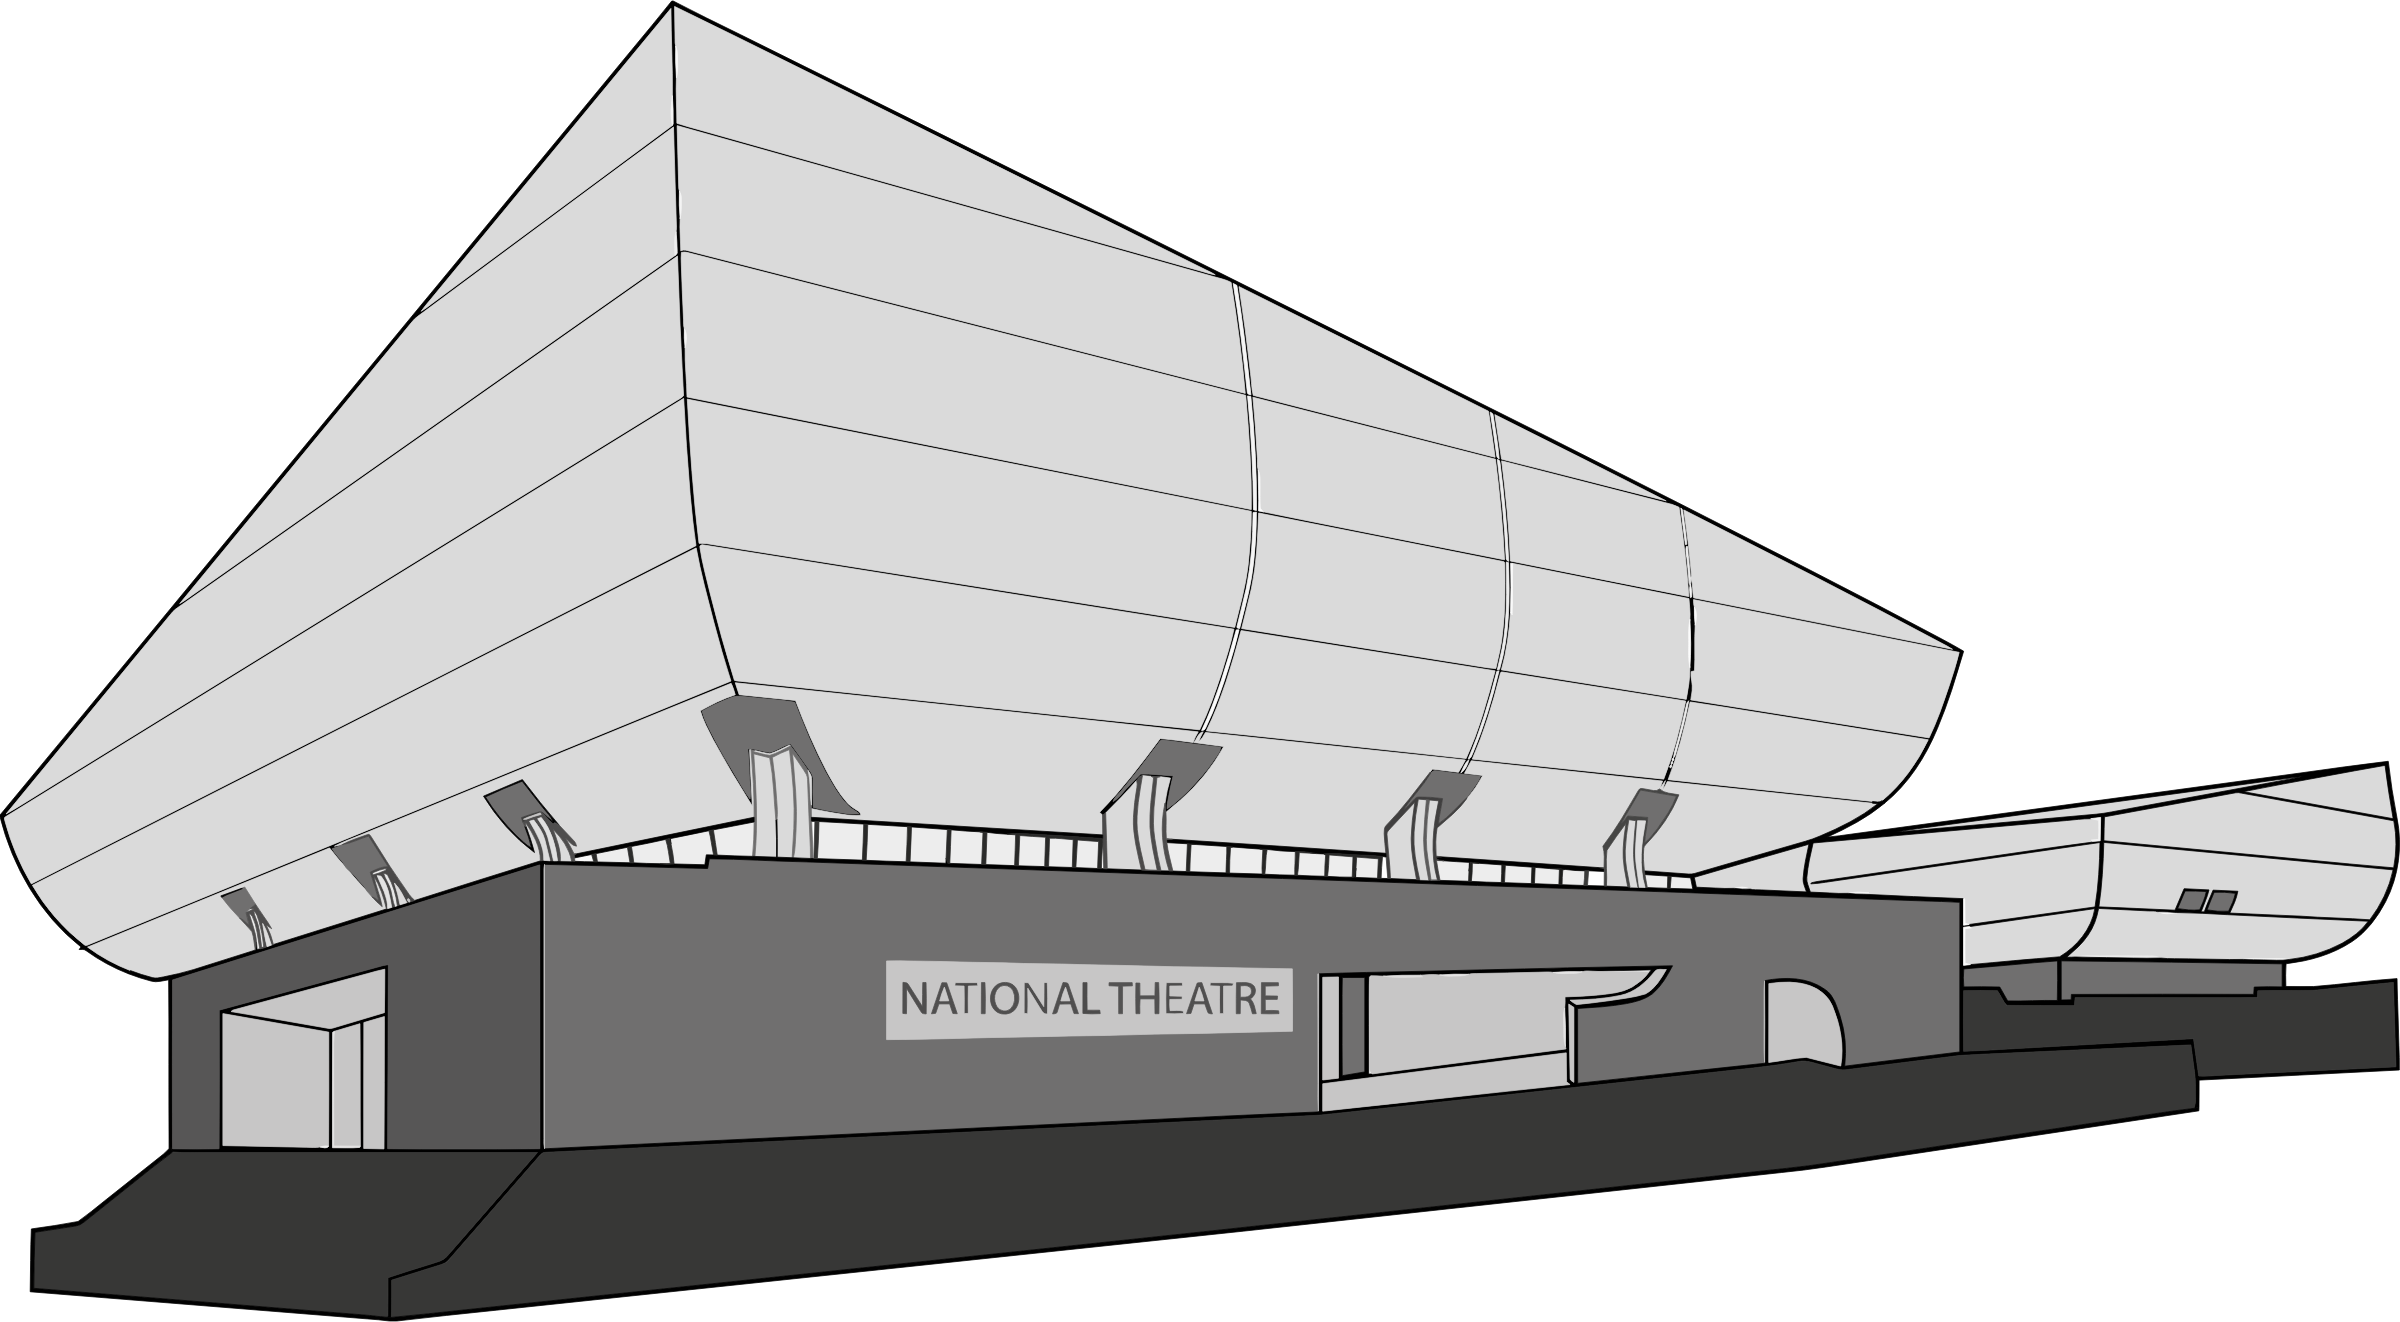 National Theatre by GDJ